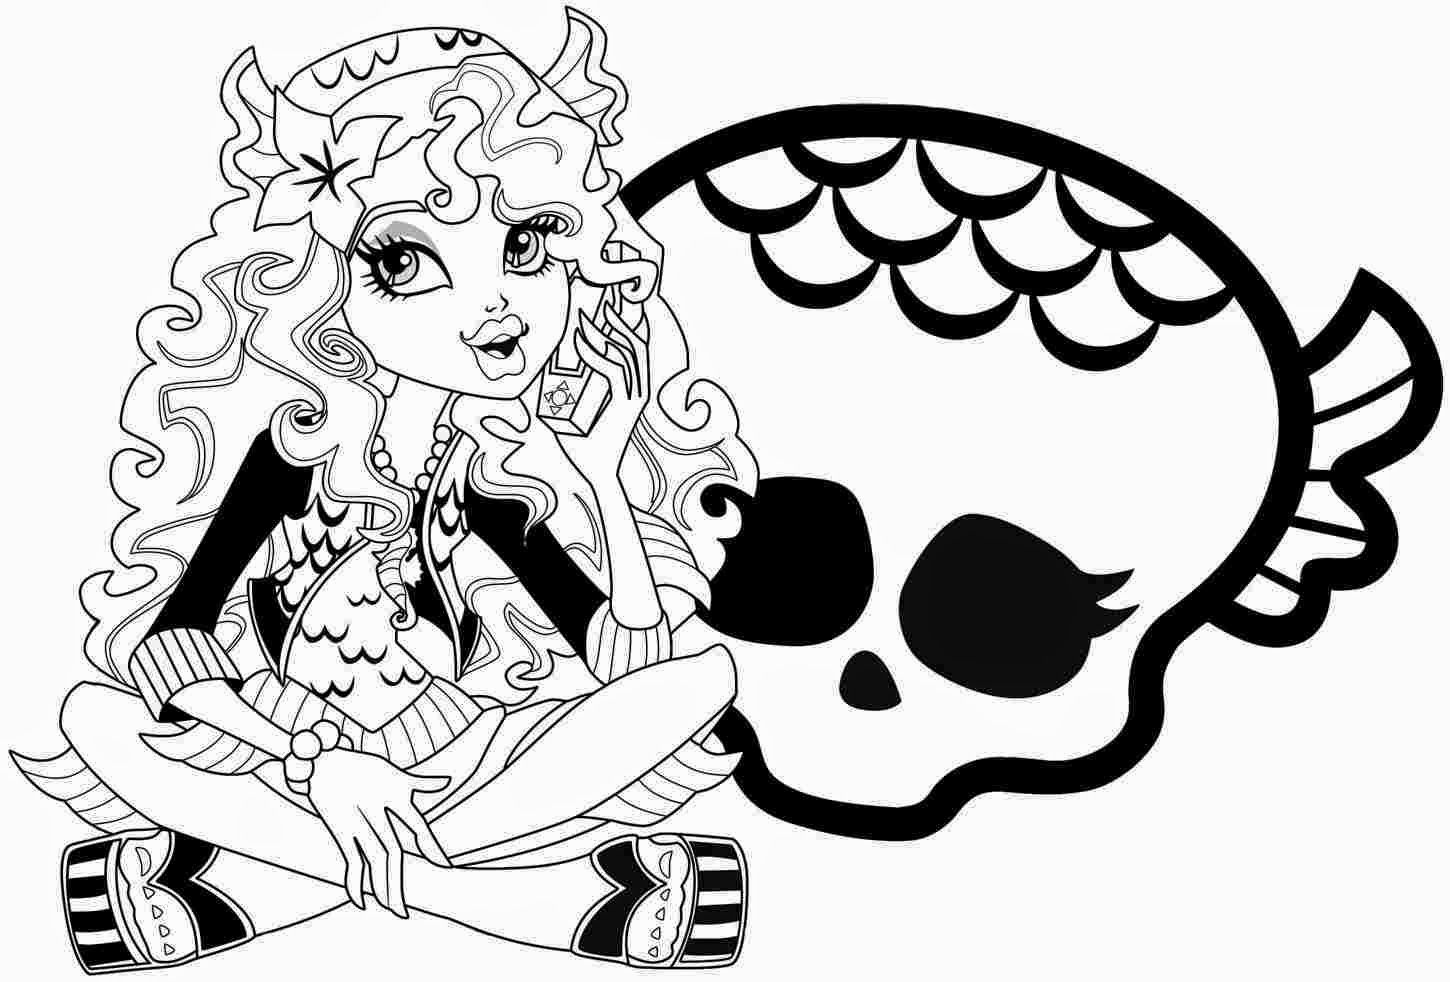 monster high characters coloring pages coloring pages monster high coloring pages - Monster High Coloring Pages